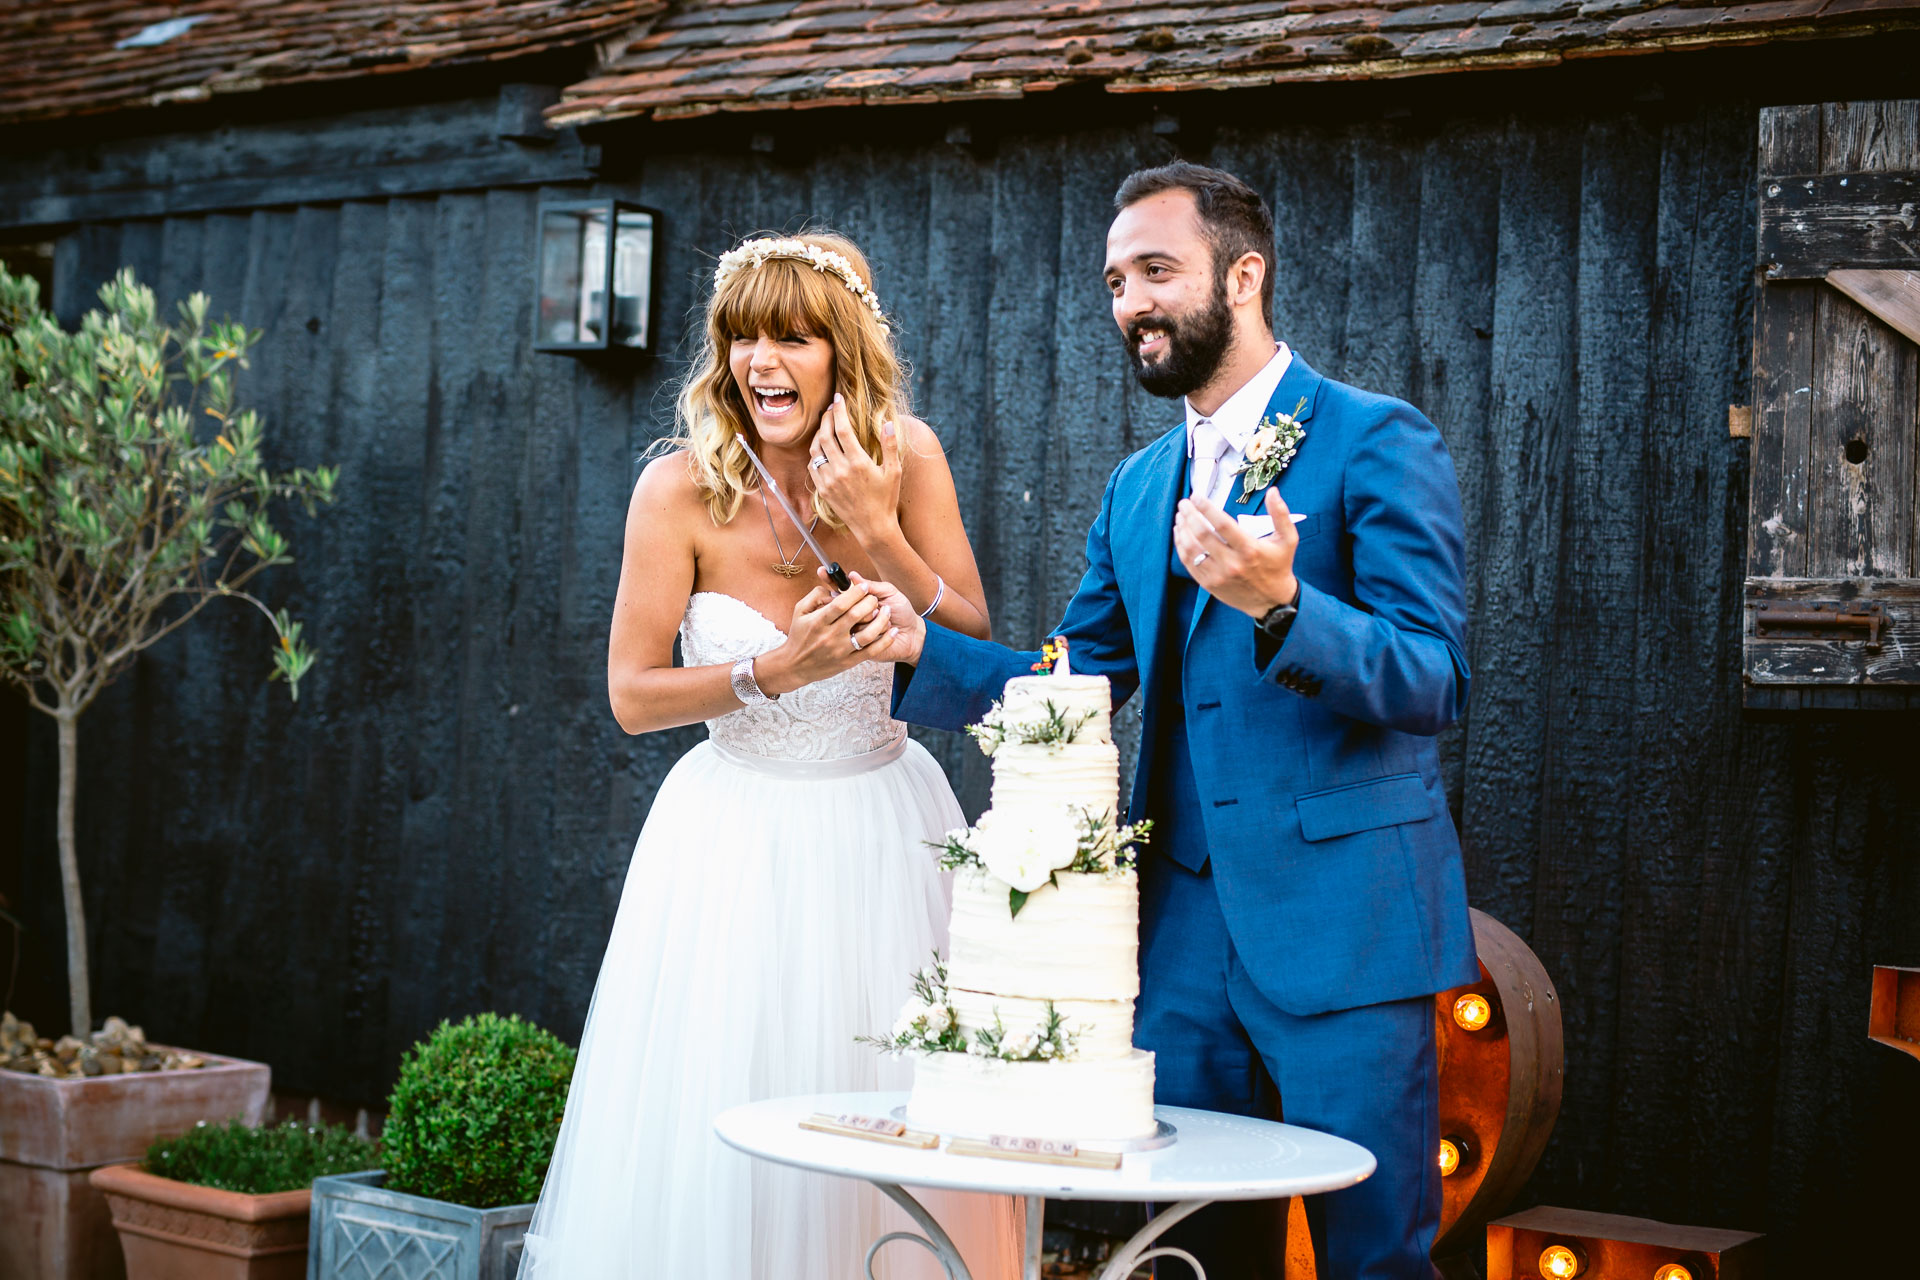 preston court boho wedding alexia and dan bride and groom cutting a wedding cake and laughing